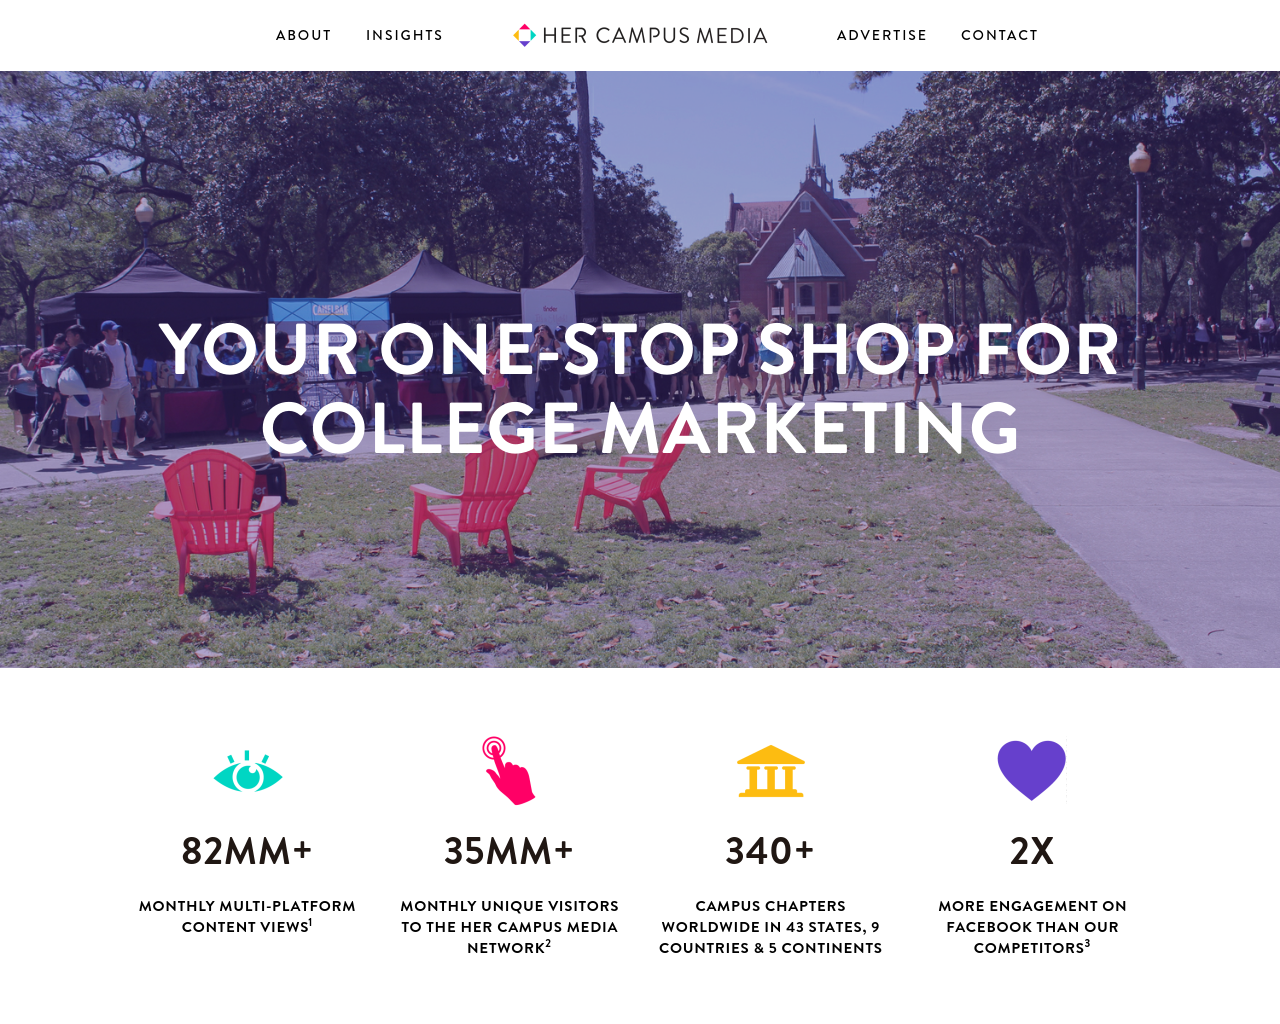 Her-Campus-Media-Advertising-Reviews-Pricing